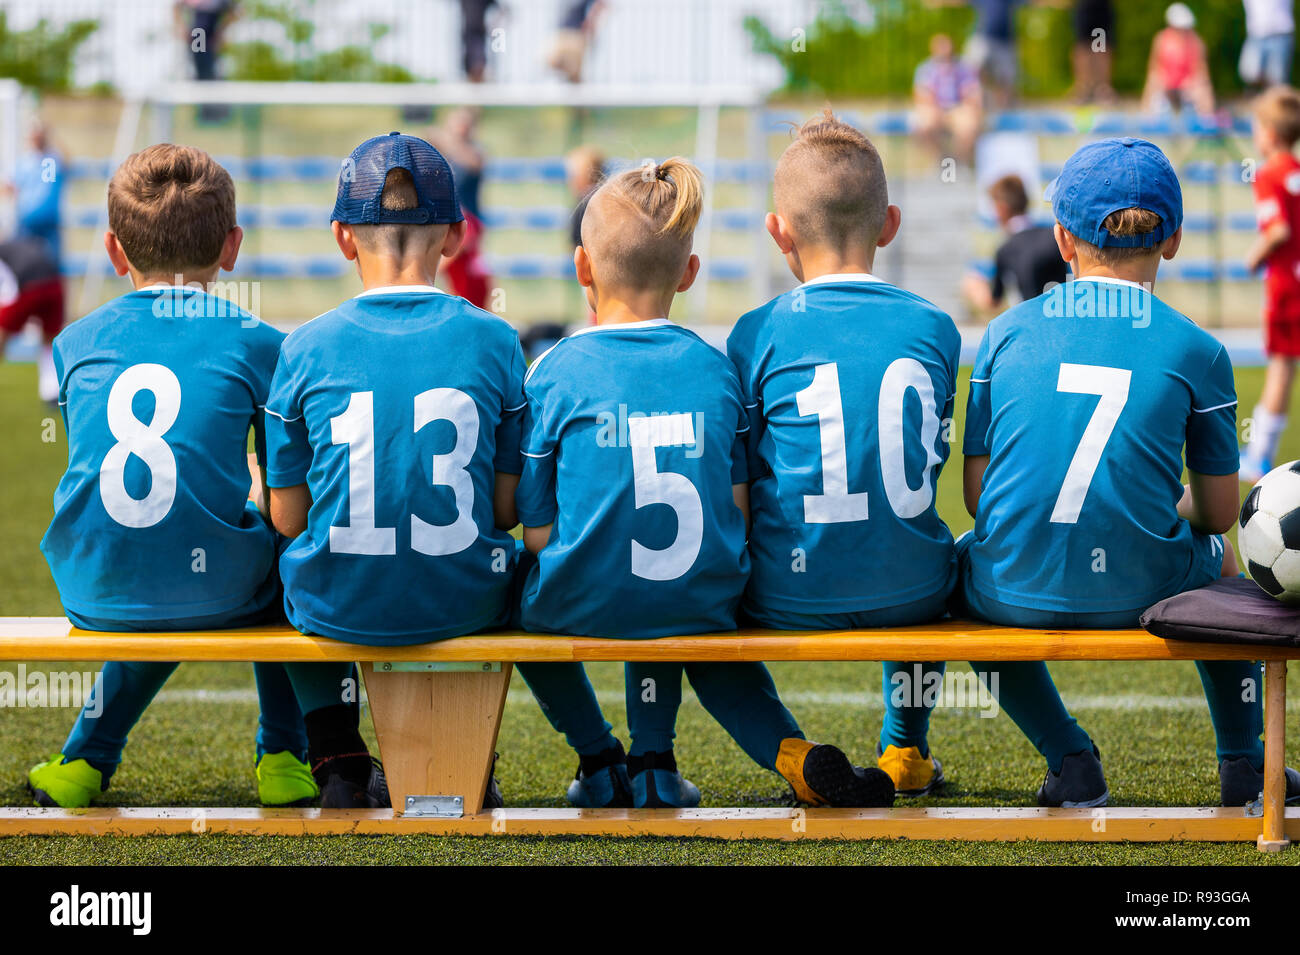 Children's Football Team During the Match.  Boys Football Team Members Sitting on Soccer Bench on the Grass Field. Kids Football Team with Ball on the - Stock Image